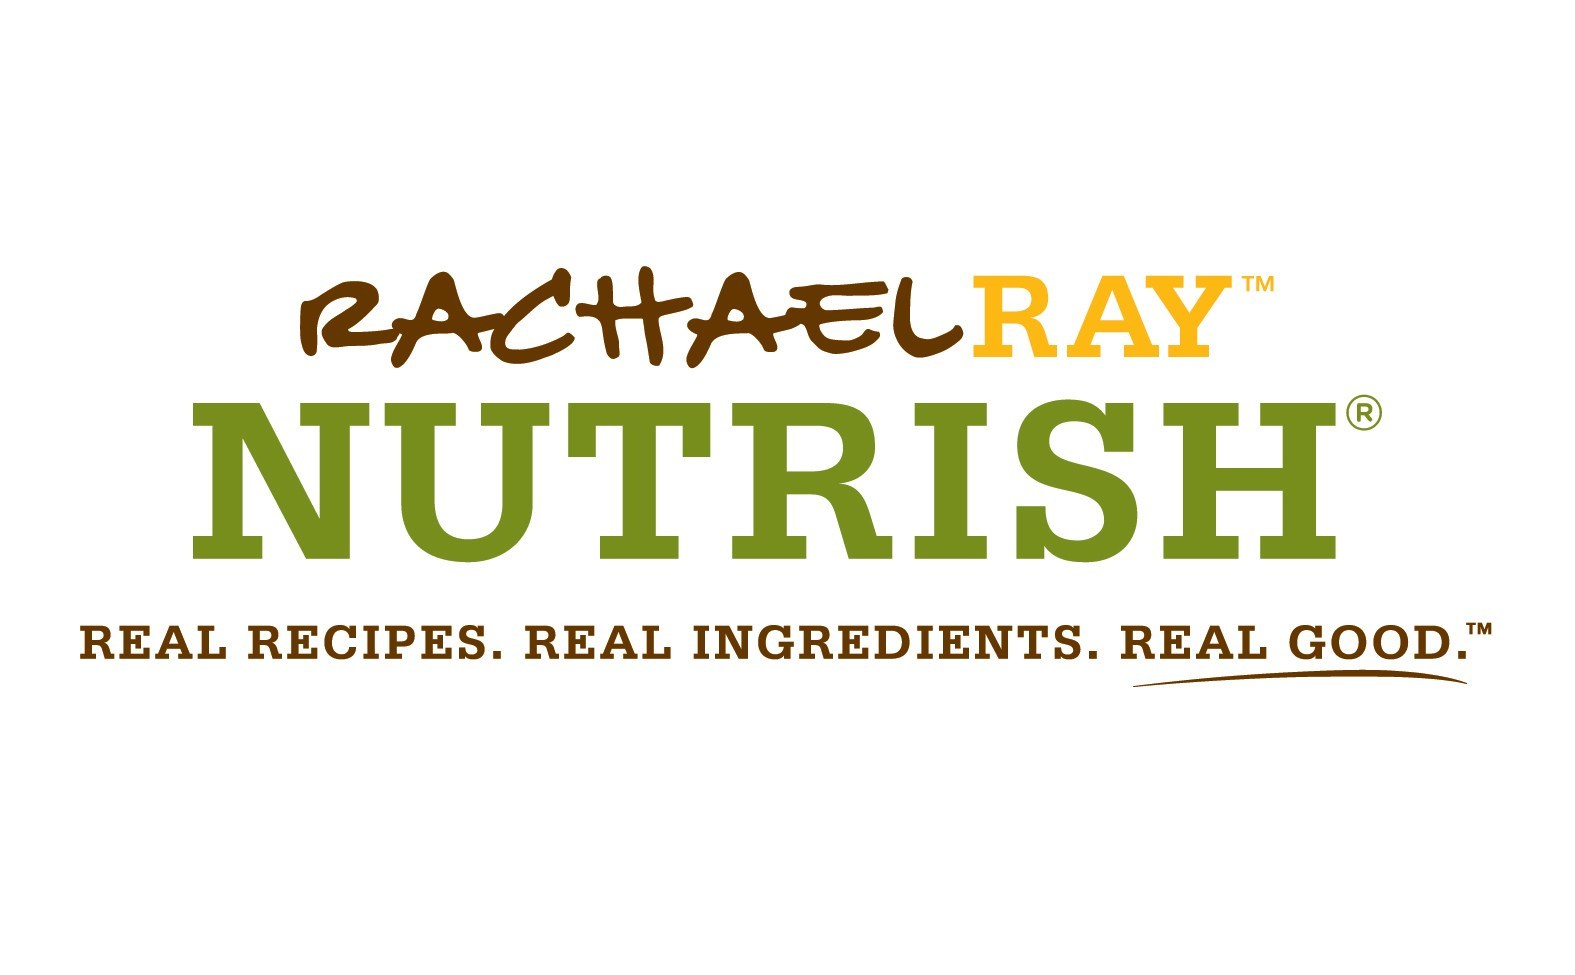 Every Nutrish pet food recipe is natural, made with simple, wholesome ingredients plus essential nutrients, and never contains any artificial preservatives, flavors, or poultry by-product meal.